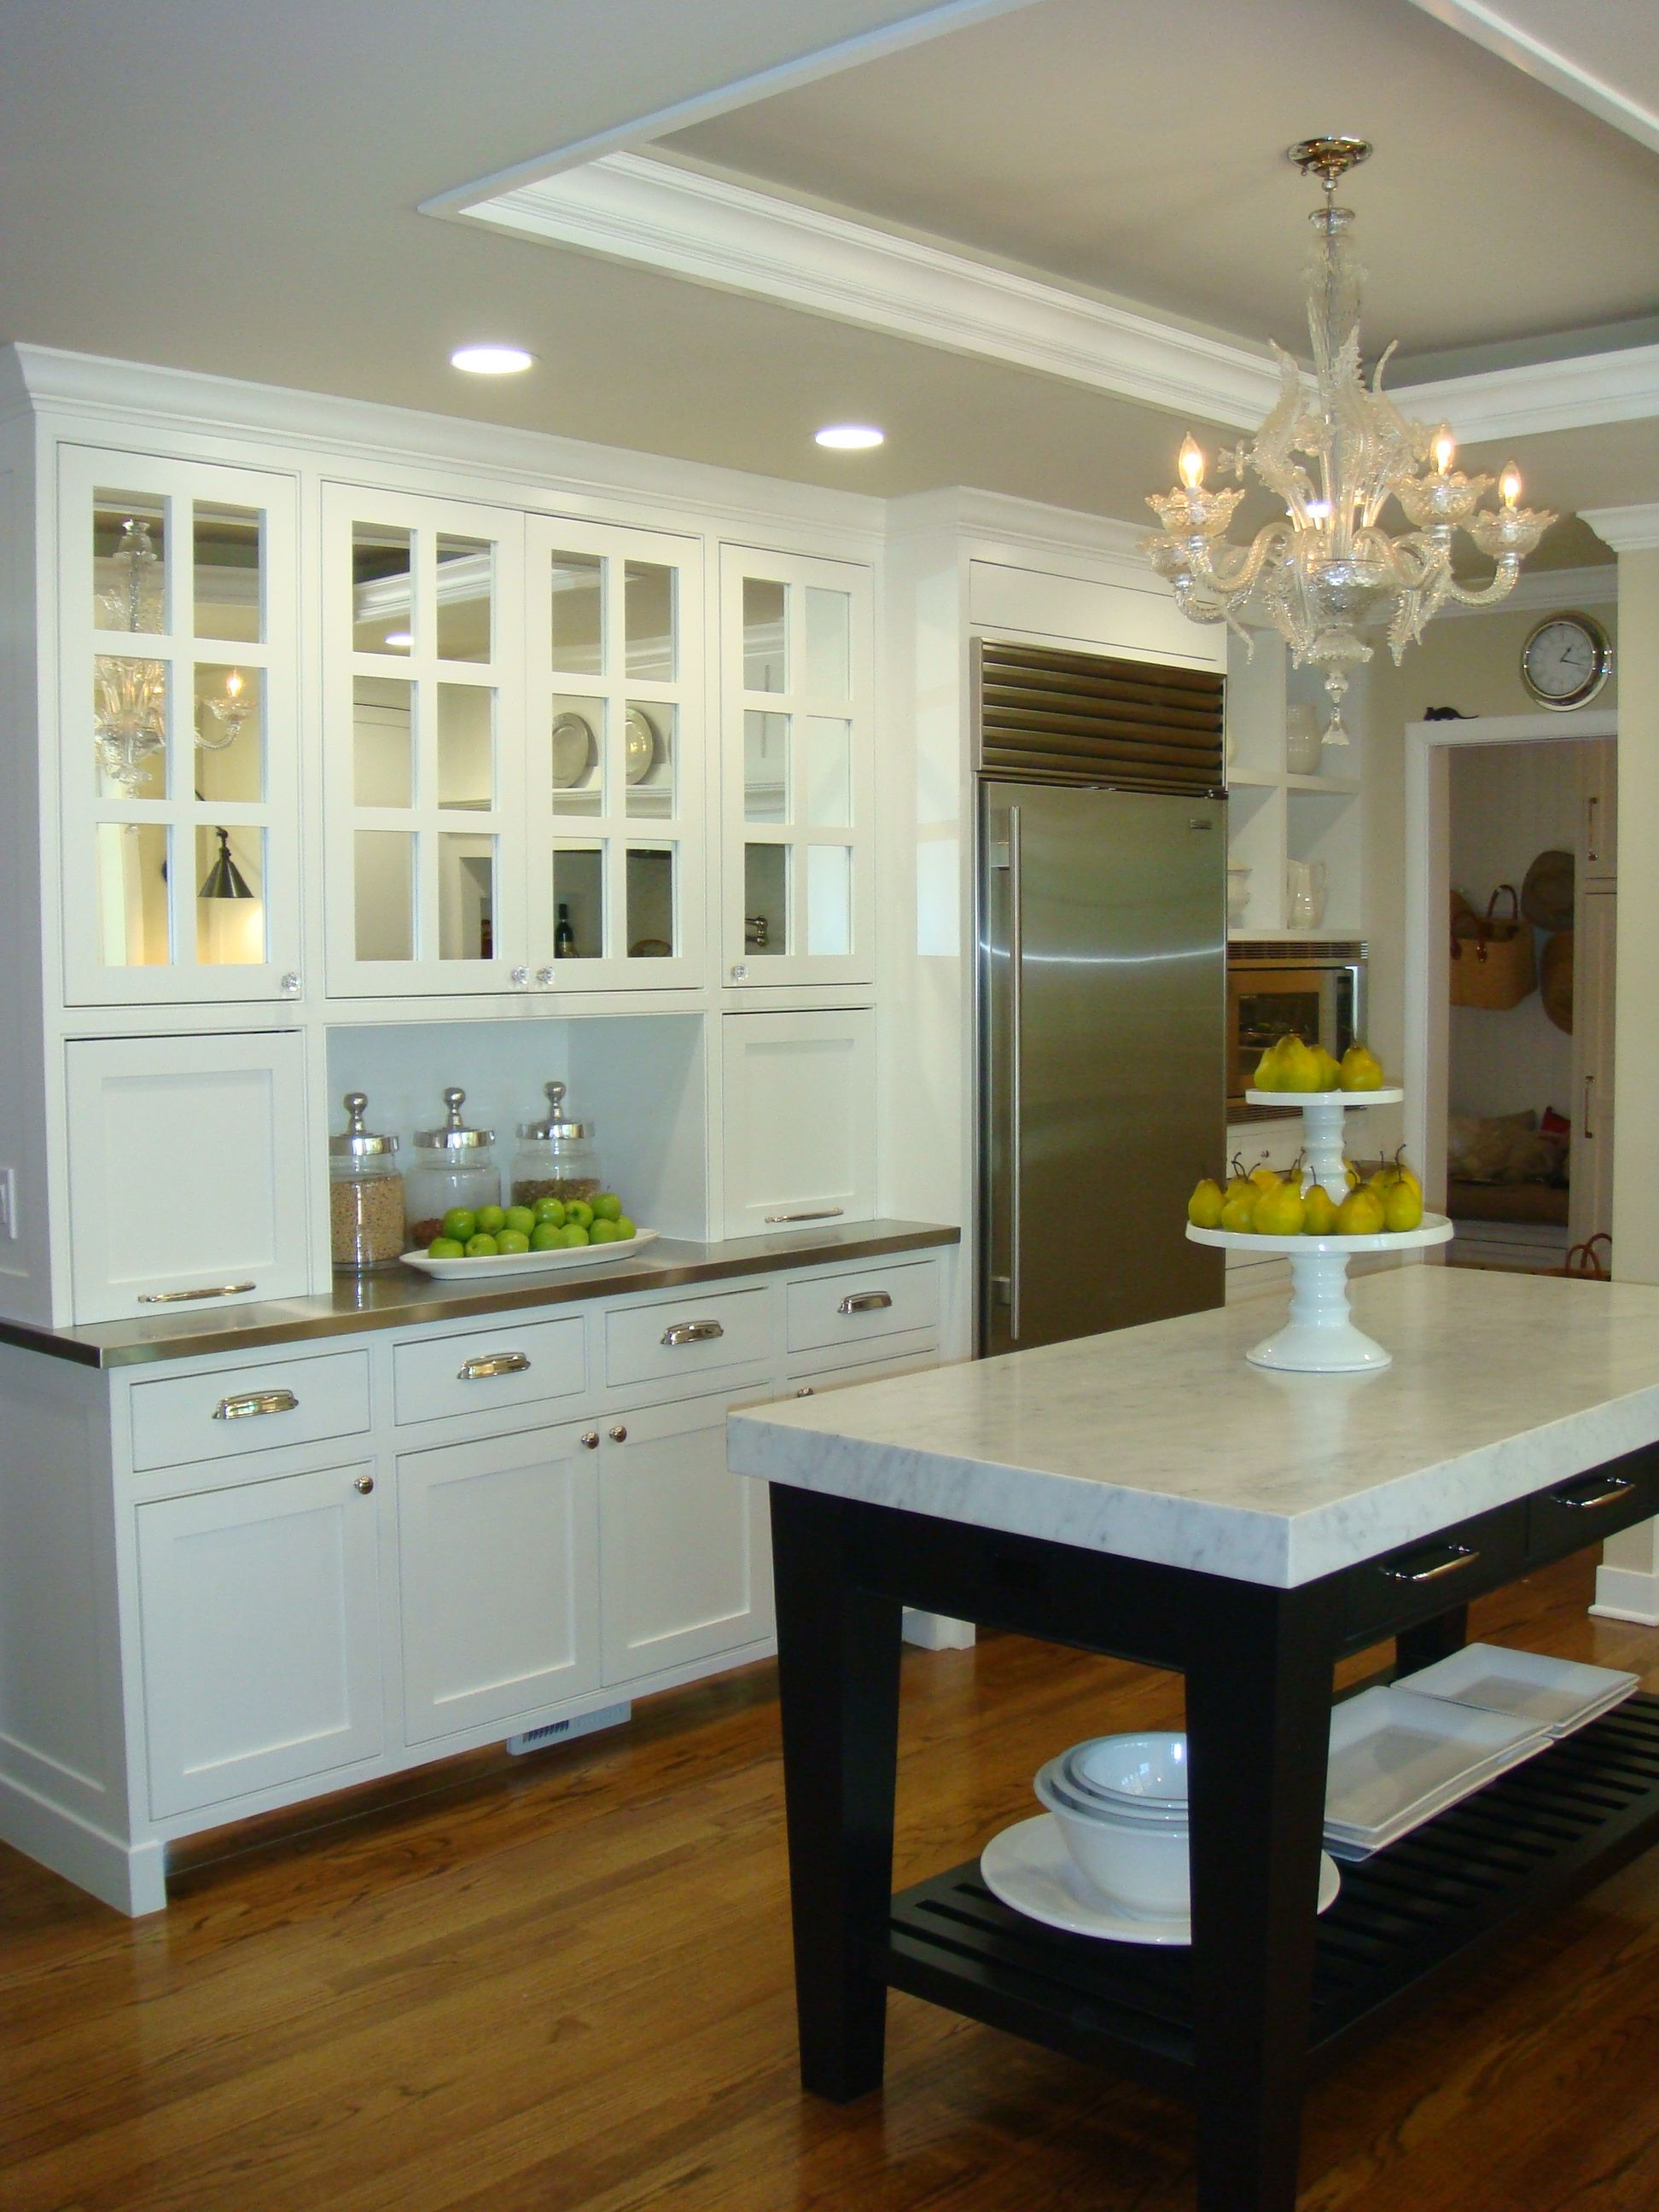 recessed kitchen ceiling lighting Bing